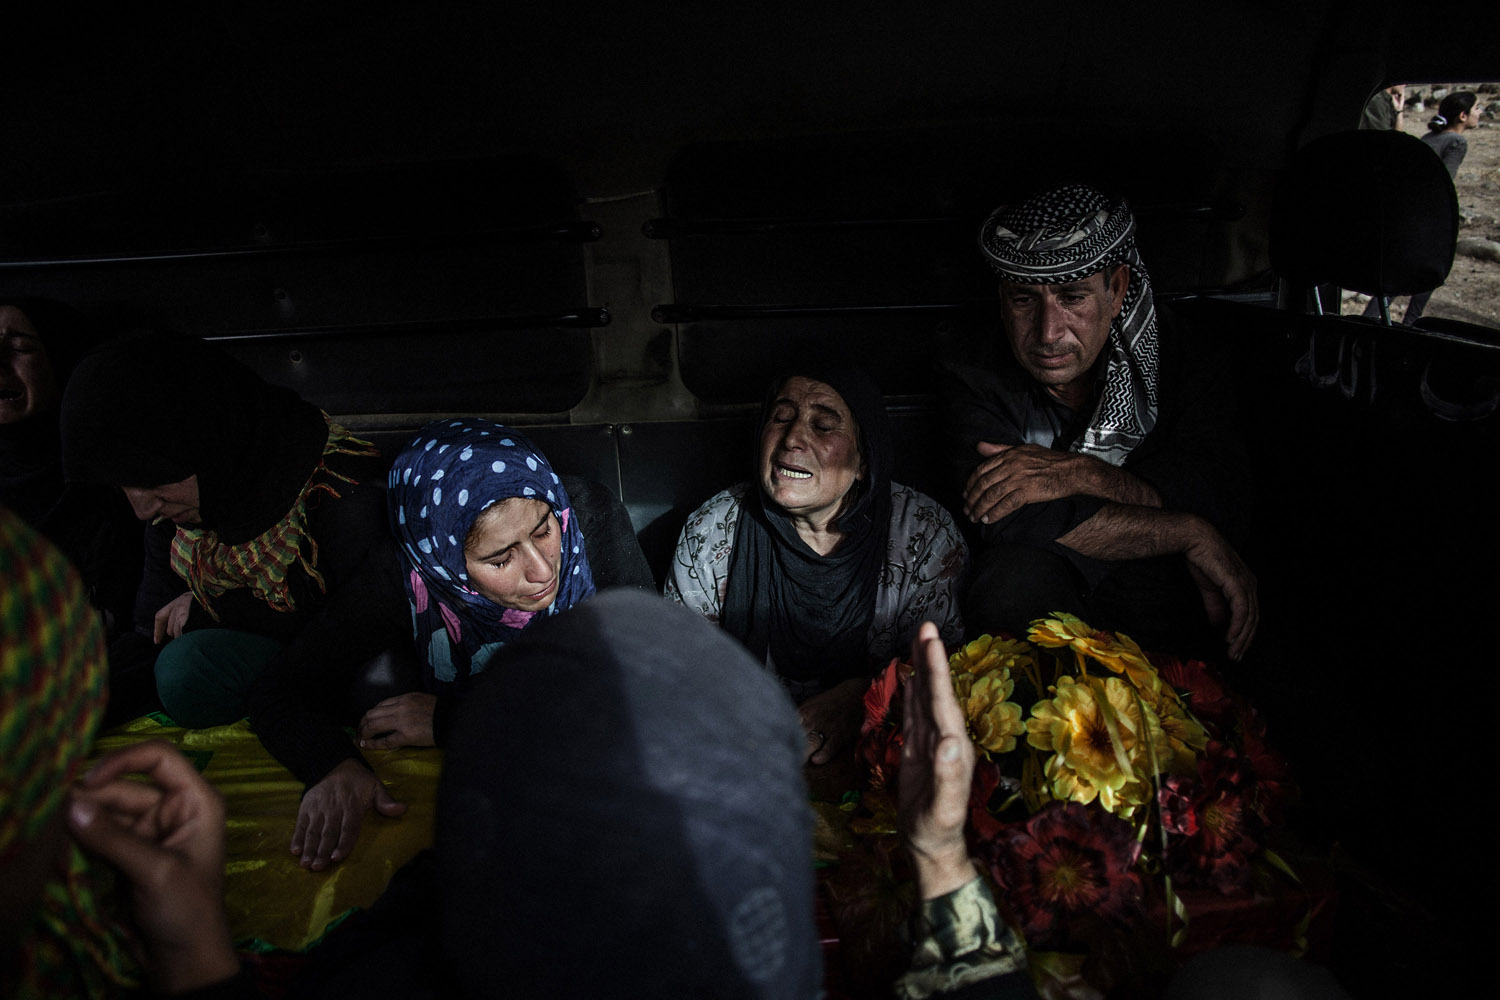 Relatives of a YPG fighter killed in the fighting against the Nusra Front mourn over his coffin in a van in al-Malikiyah (Derik).